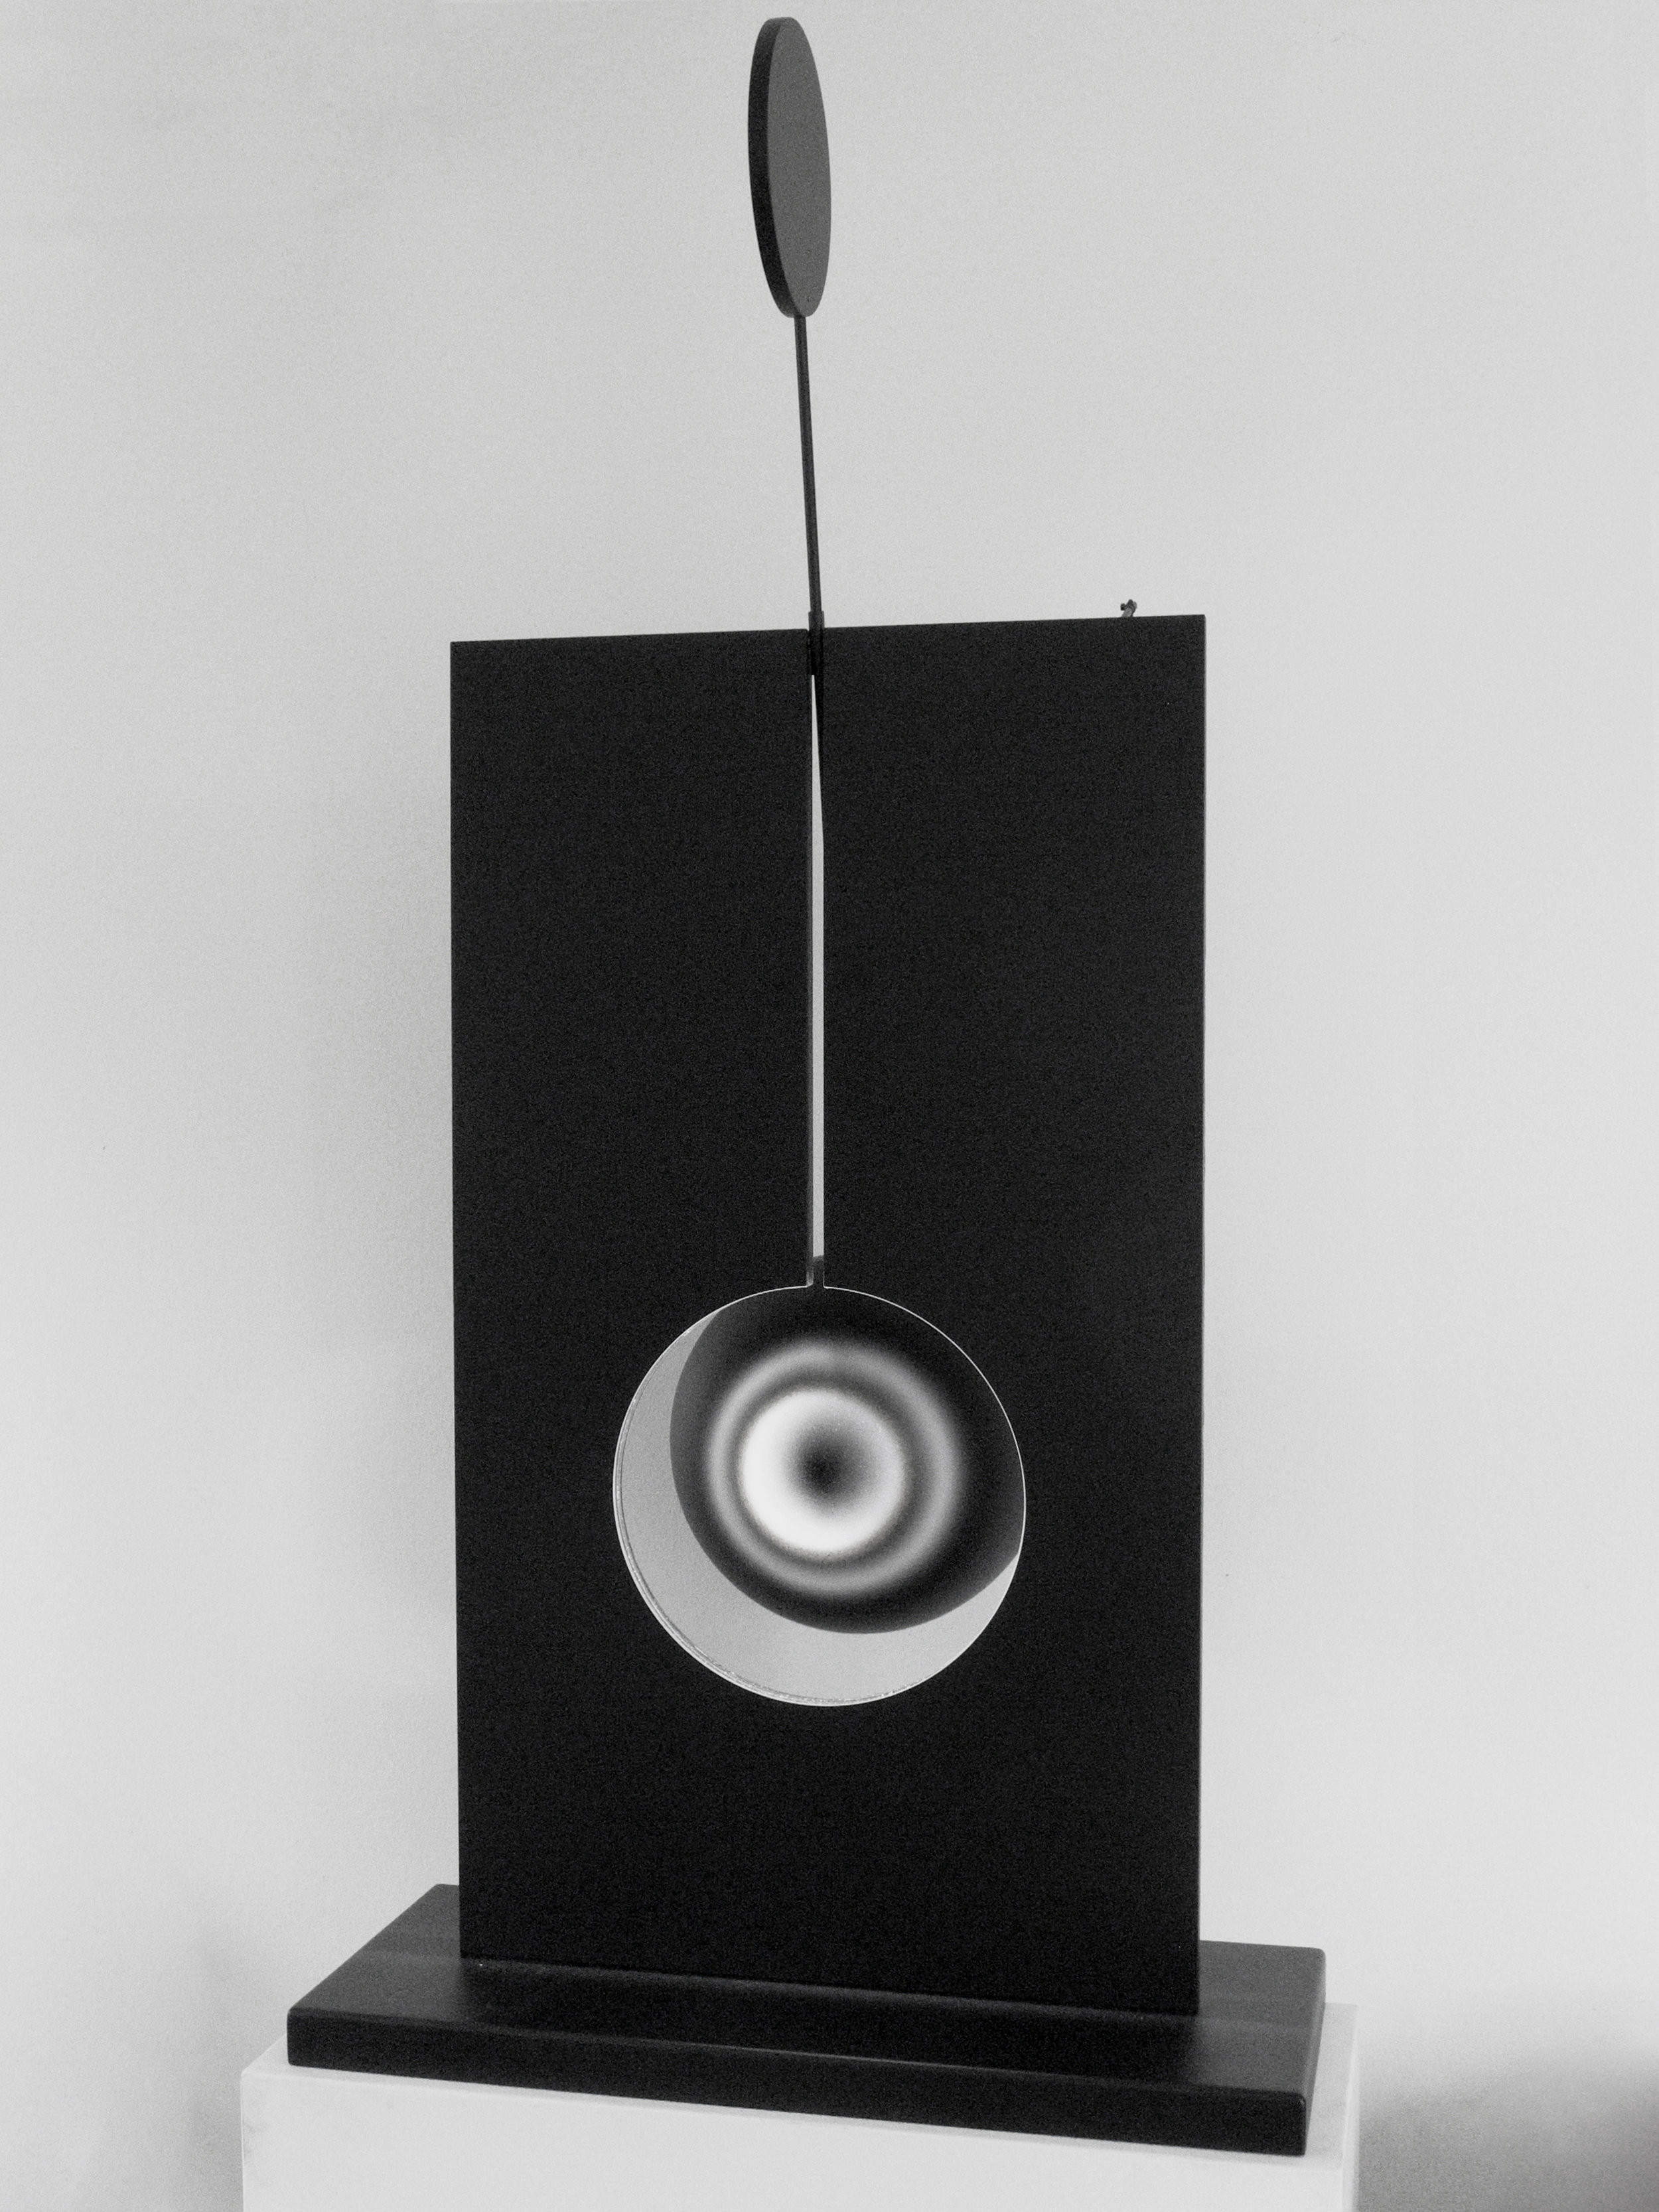 SPHERICAL VARIATIONS    Stand sculpture Anodized, bead-blasted aluminum, stain- less steel 130 x 70 x 30 cm ed. 3/7